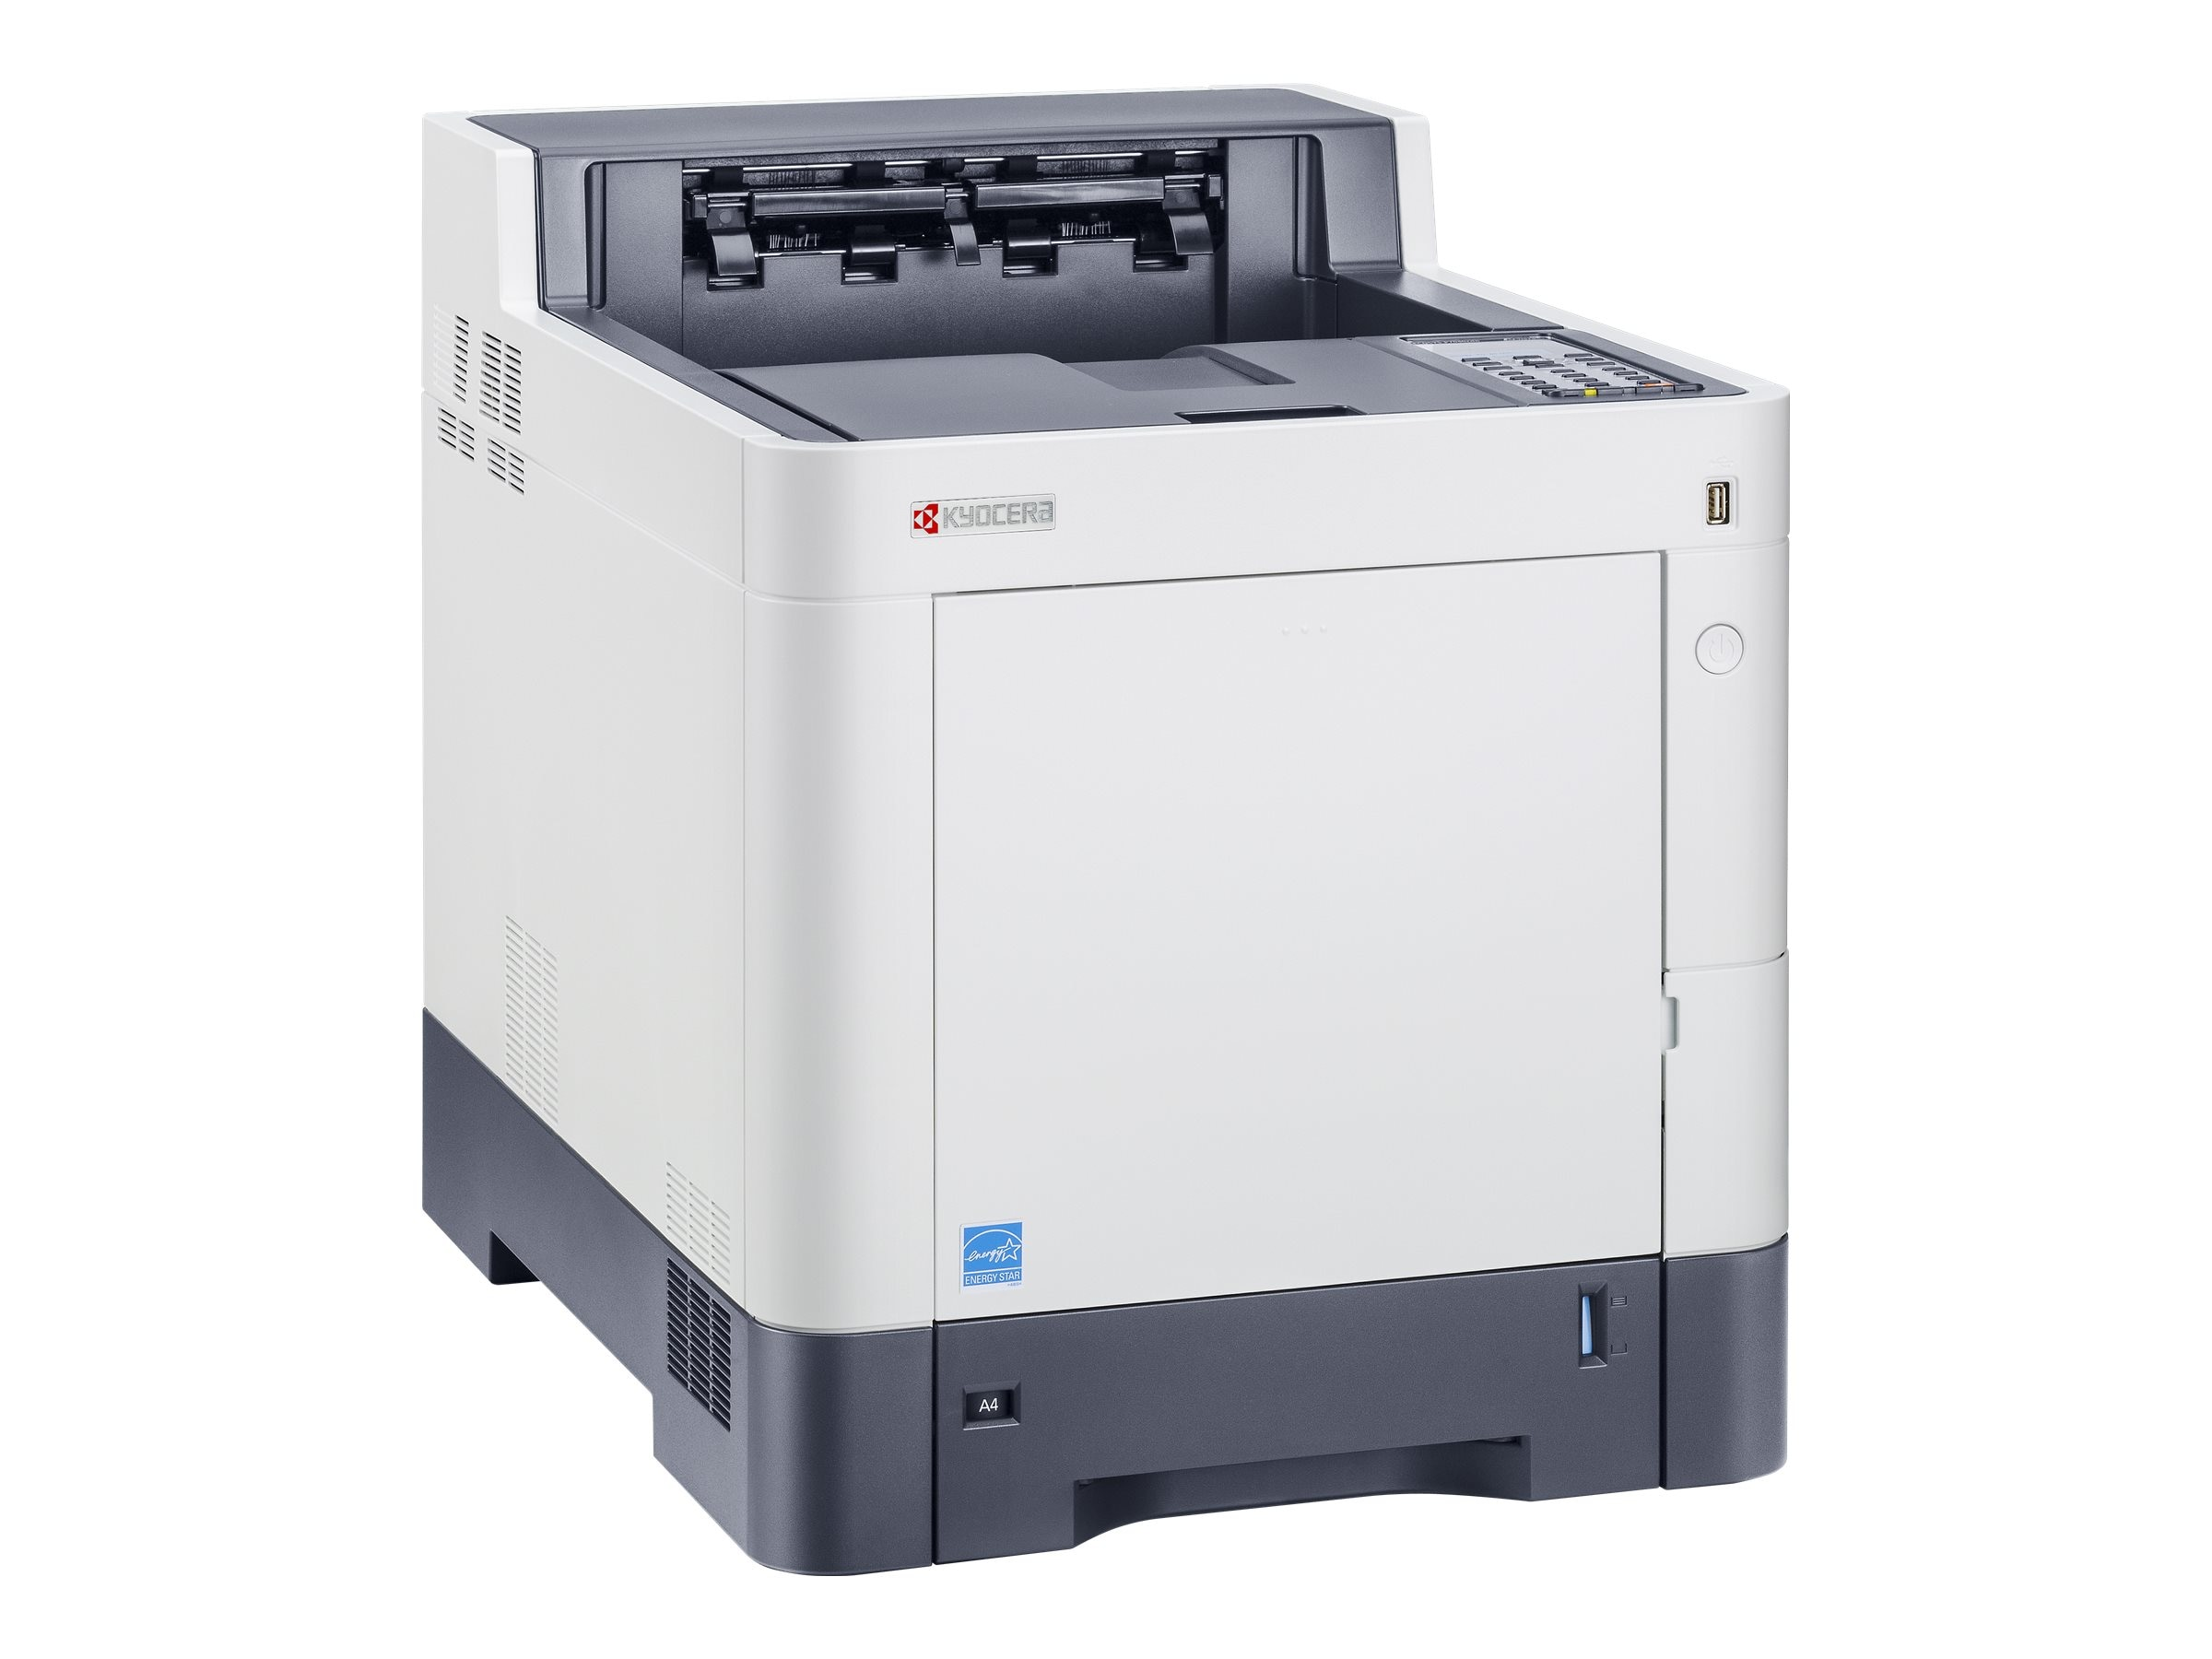 Kyocera ECOSYS P7040cdn Color Printer, P7040CDN